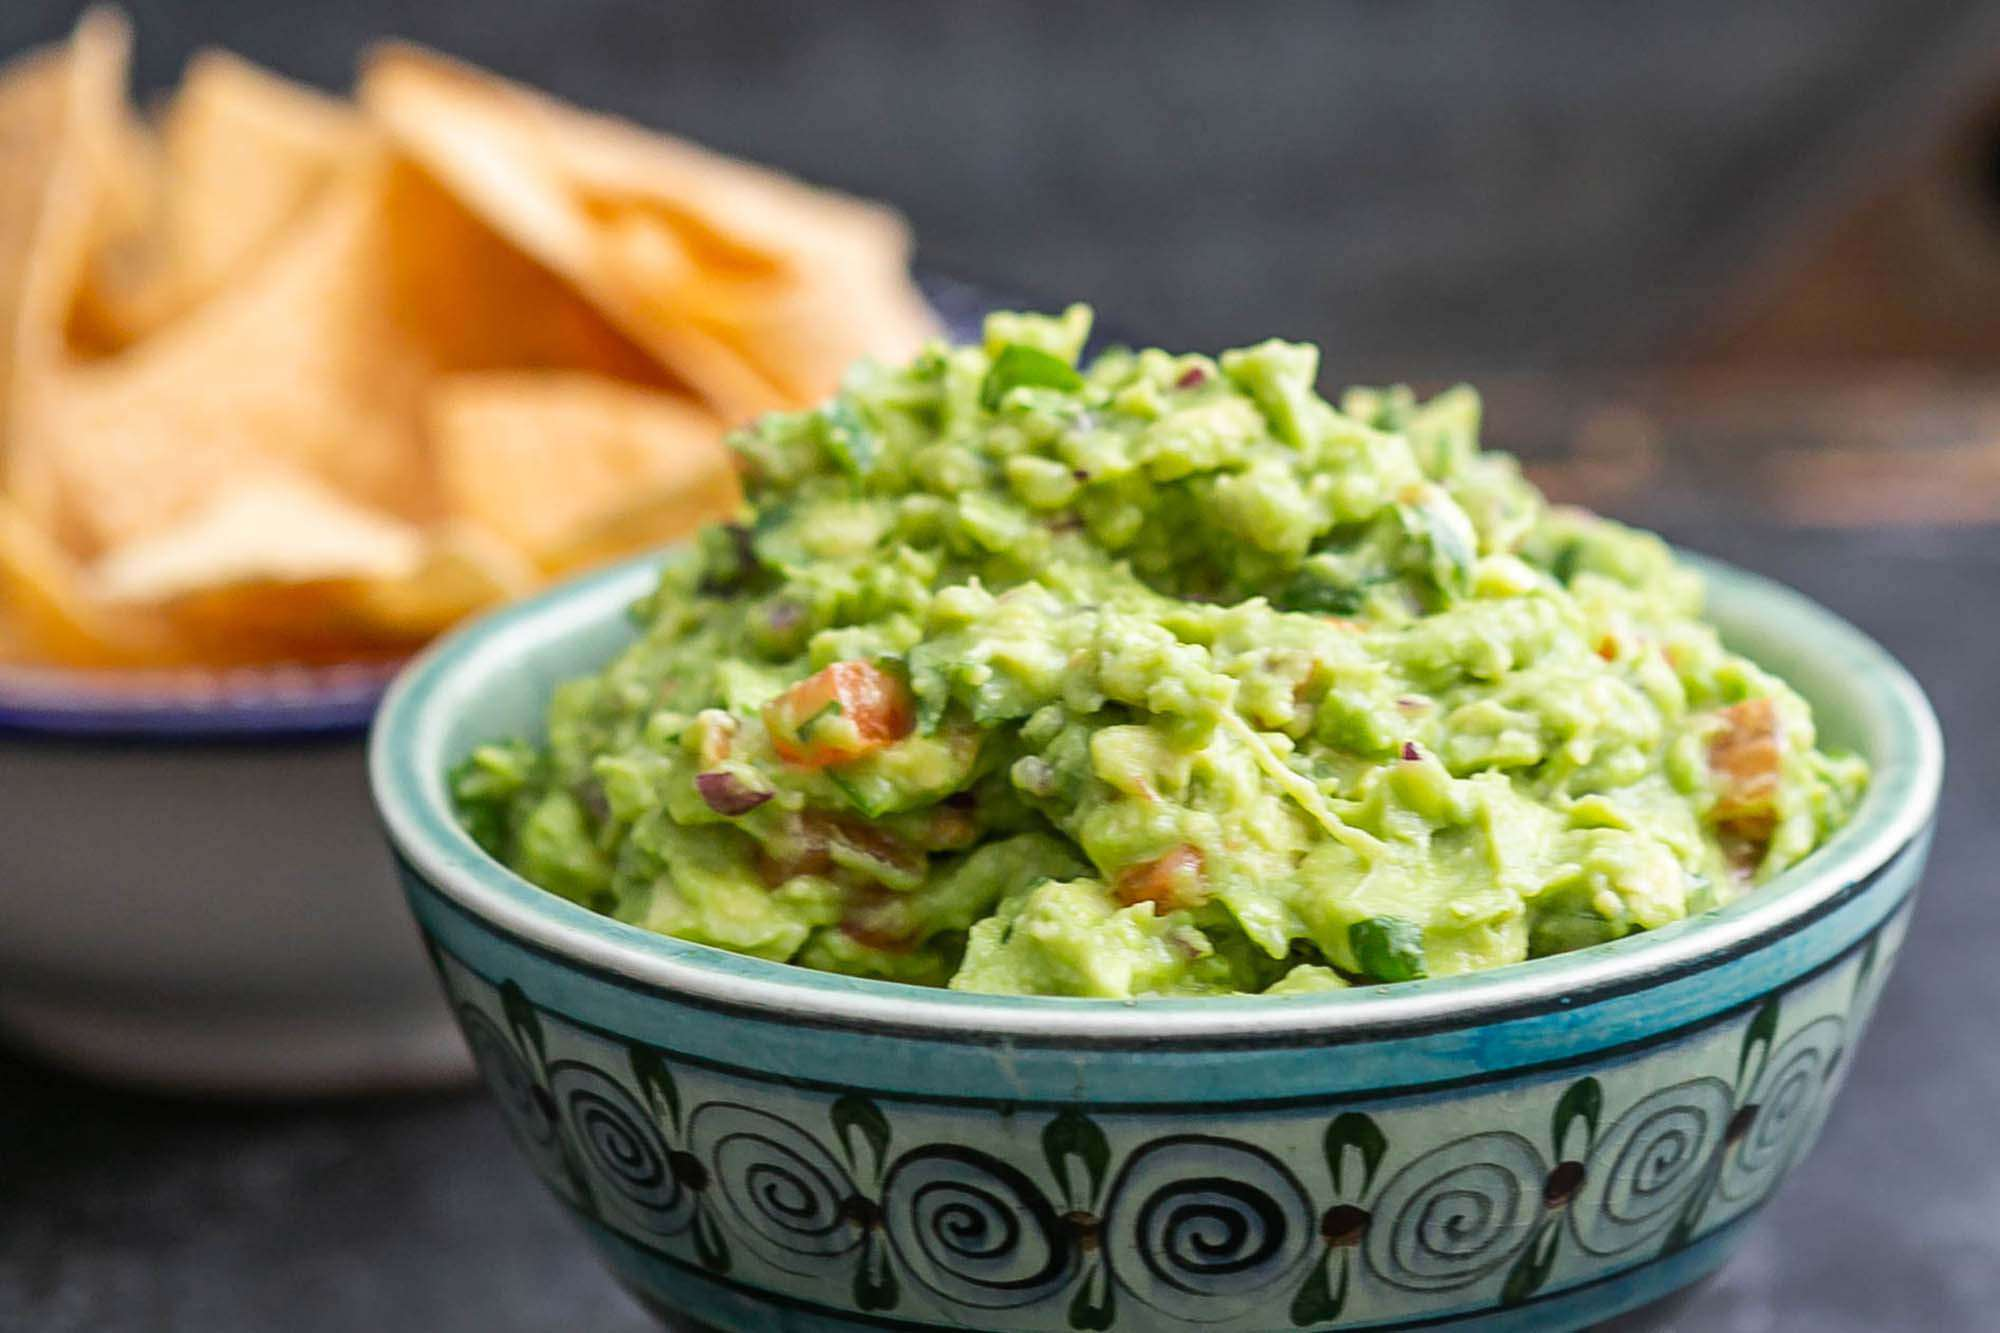 Our best guacamole, served with chips